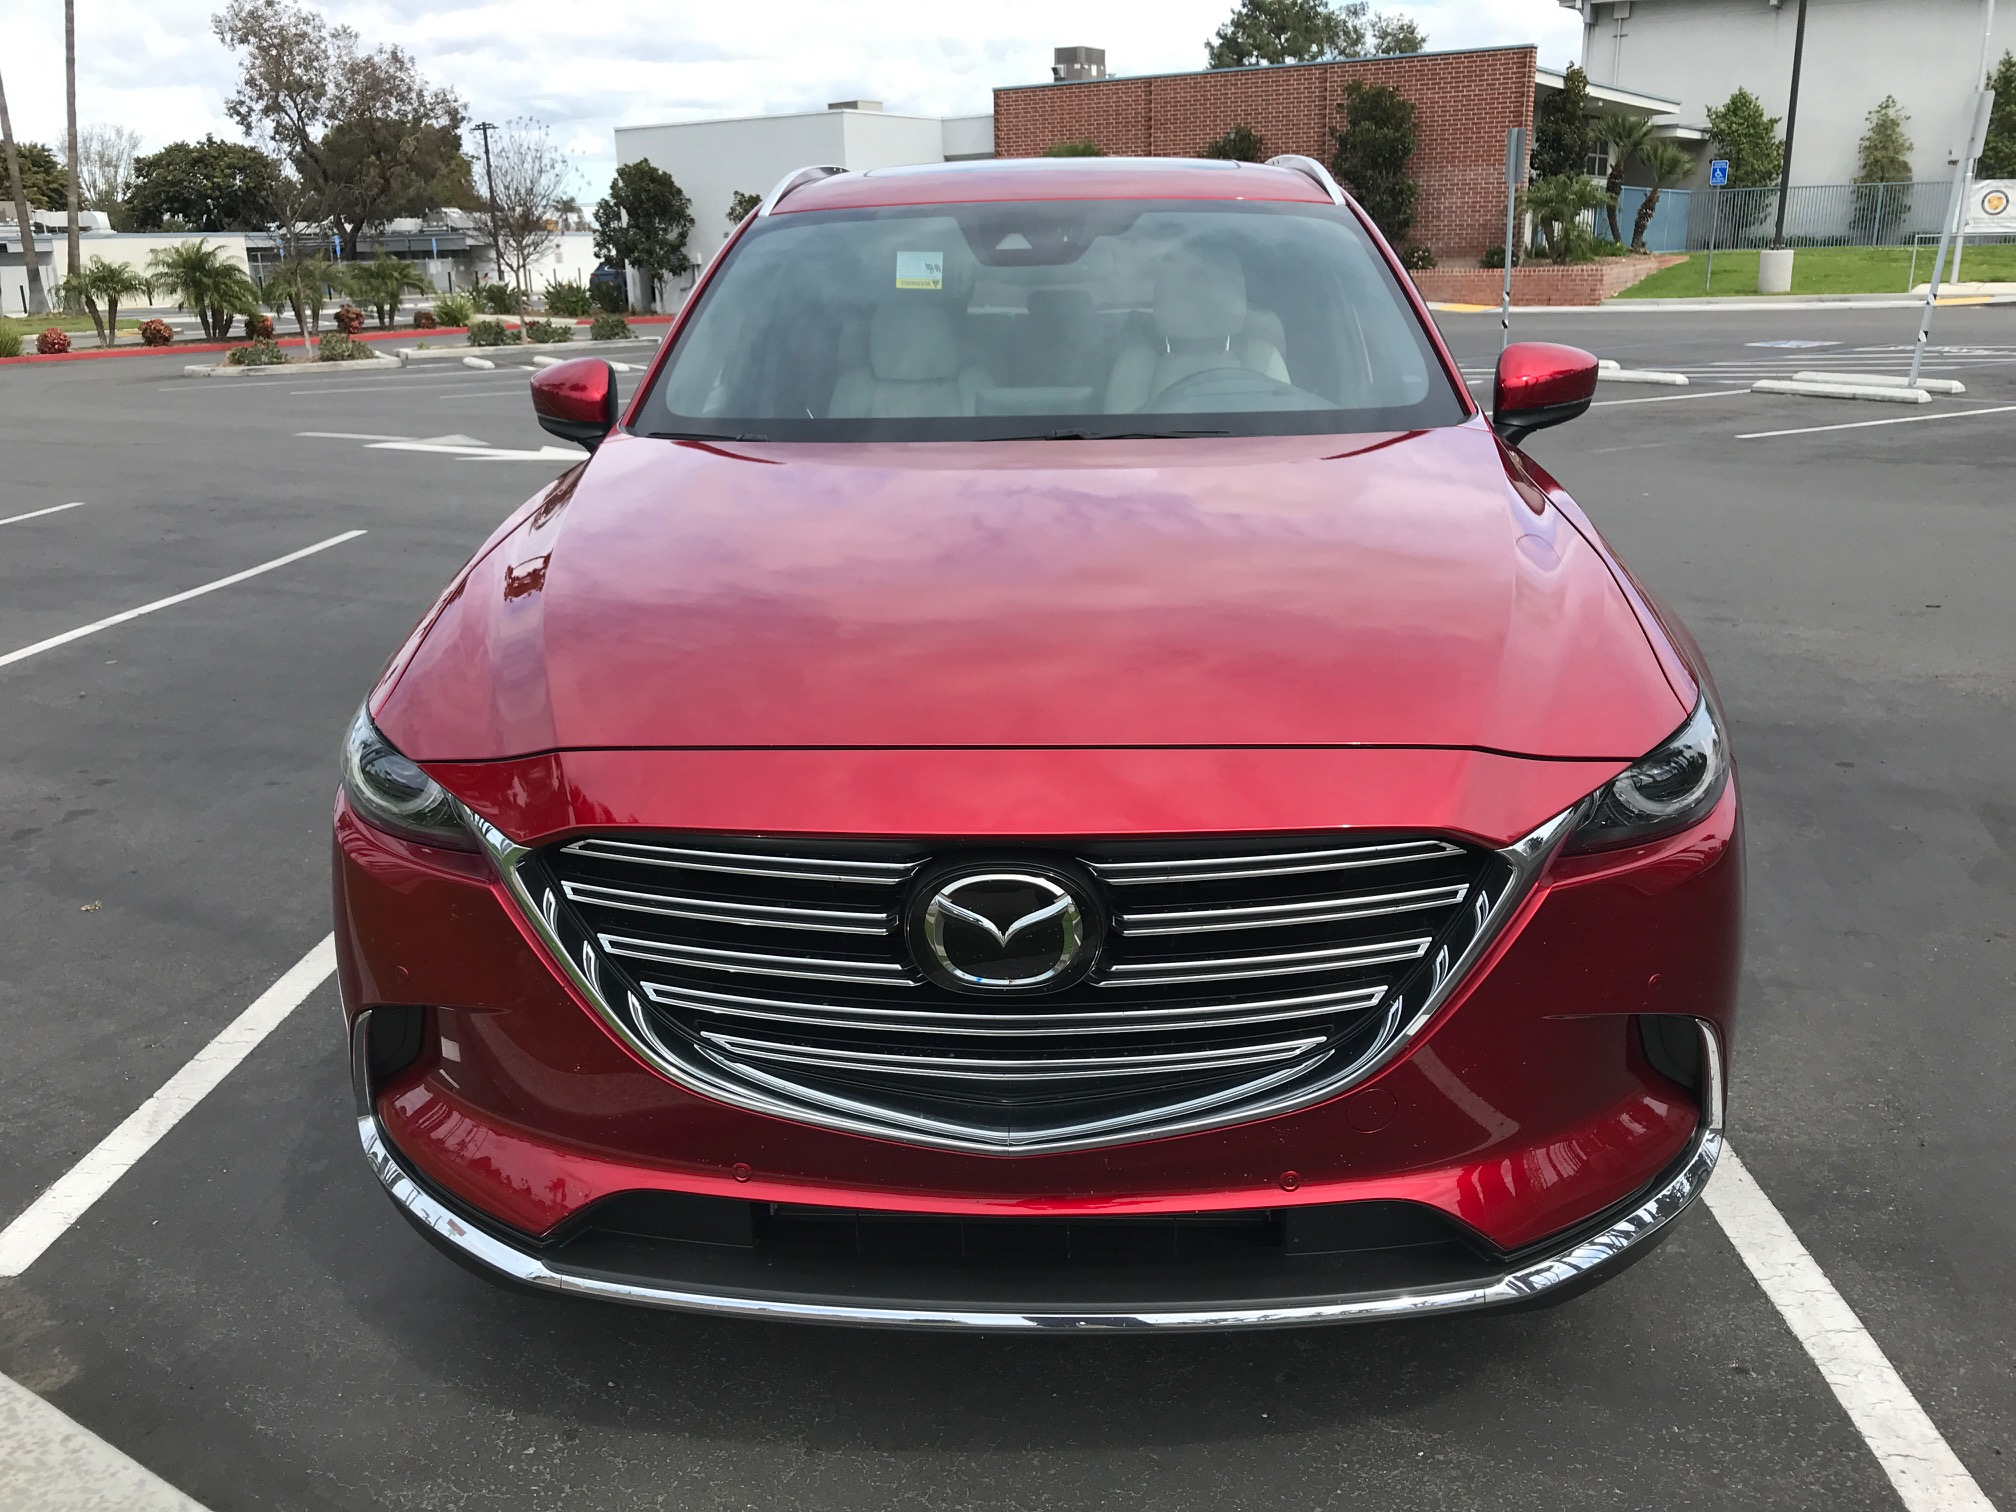 Driver Digs the Drive and Riders Relish the Ride in 2018 Mazda CX 9